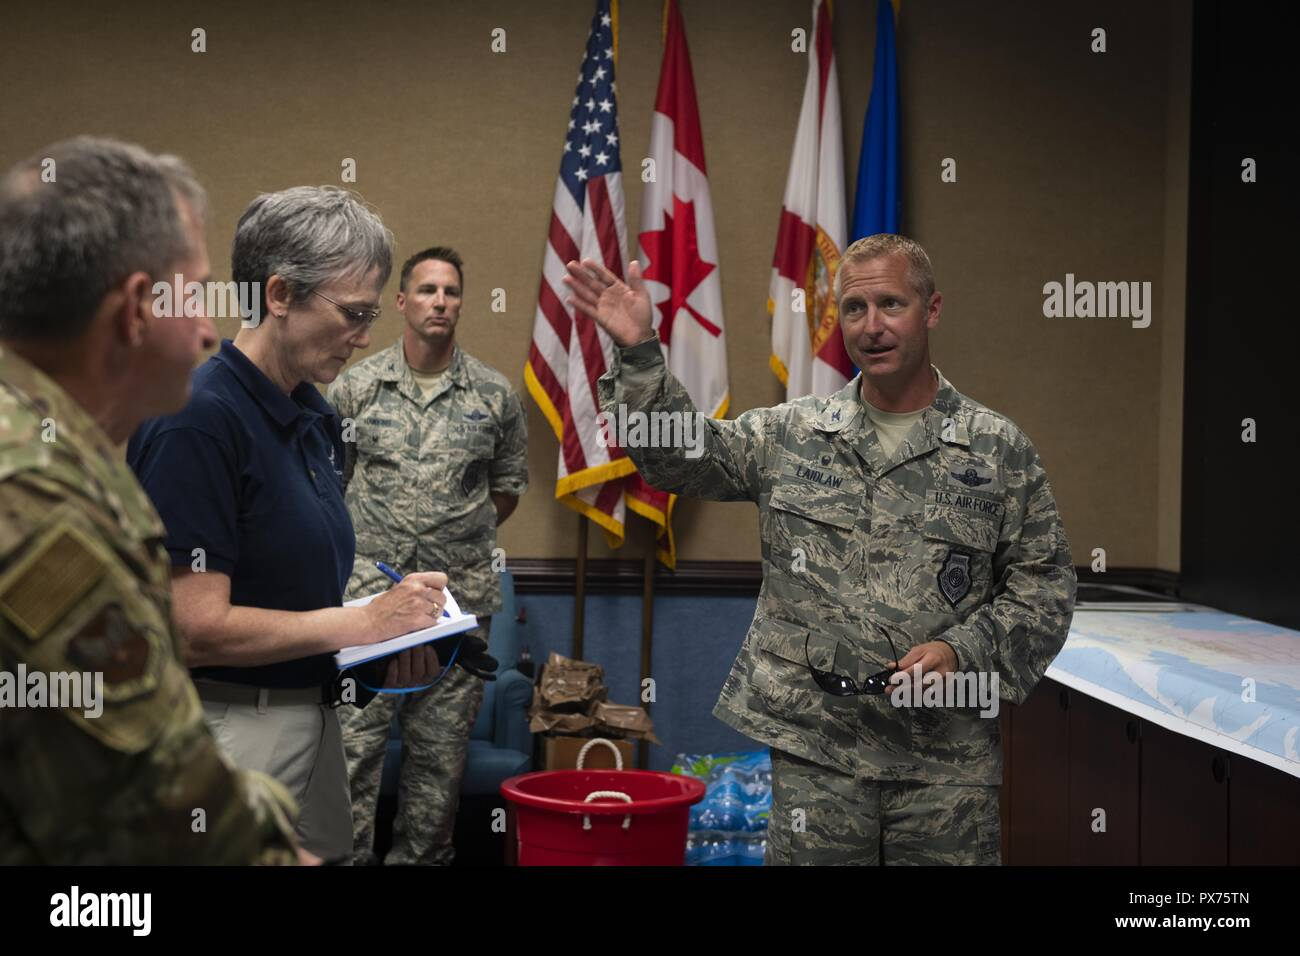 U.S. Air Force Col. Brian Laidlaw, right, commander of the 325th Fighter Wing, briefs Air Force senior leaders on the status of personnel and supplies at Tyndall Air Force Base, Florida, Oct. 14, 2018, October 14, 2018. Air Force senior leaders toured Tyndall Air Force Base to assess the damage from Hurricane Michael, one of the most intense tropical cyclones to ever hit the U.S. (U.S. Air Force photo by Senior Airman Joseph Pick). () Stock Photo